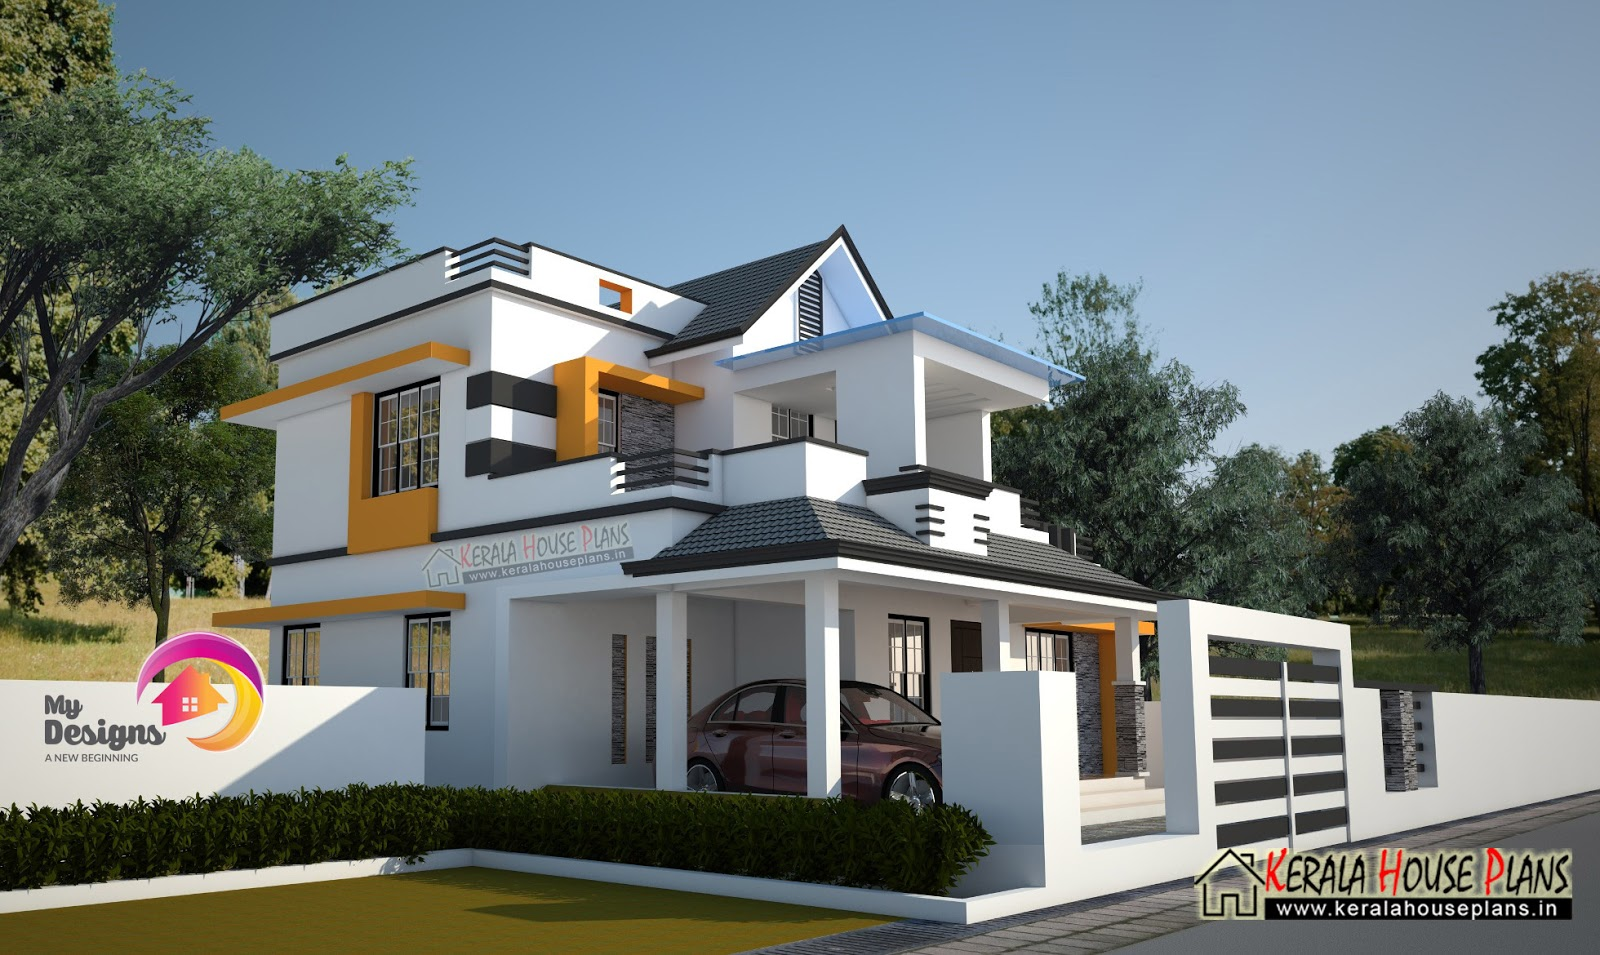 3 Bedroom 2 story house Design